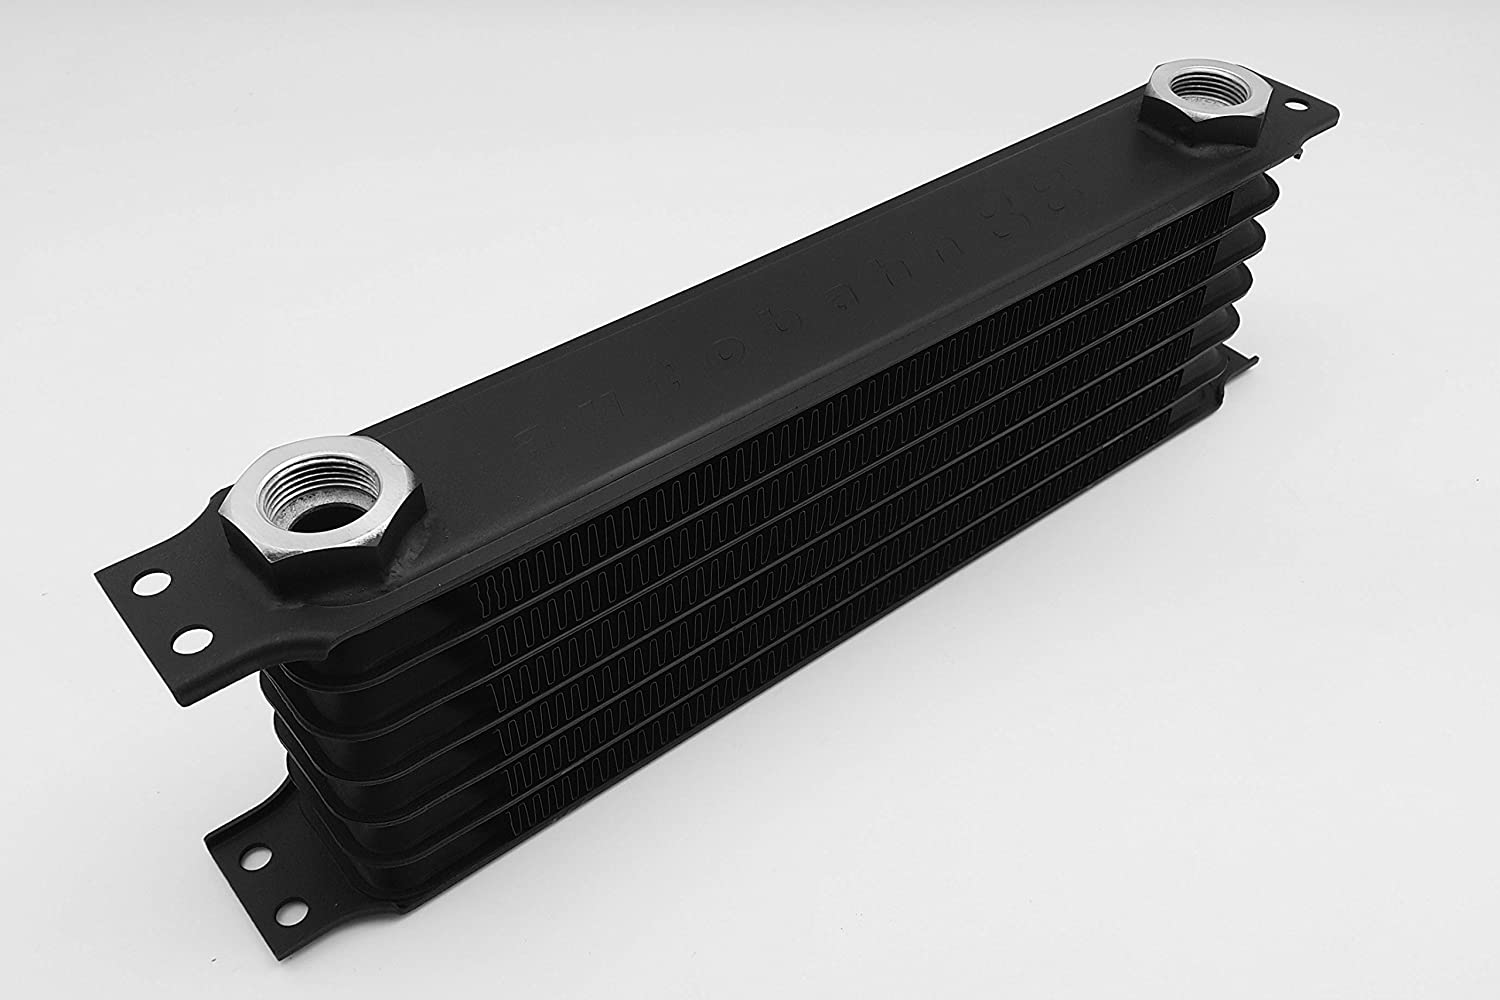 M22 Ports Black 14 Rows 300x198x50mm Compact Core Size 11.8x7.8x2 Autobahn88 Universal Oil//Automatic Transmission Fluid ATF Cooler Includes Two -10AN M22 Adapters